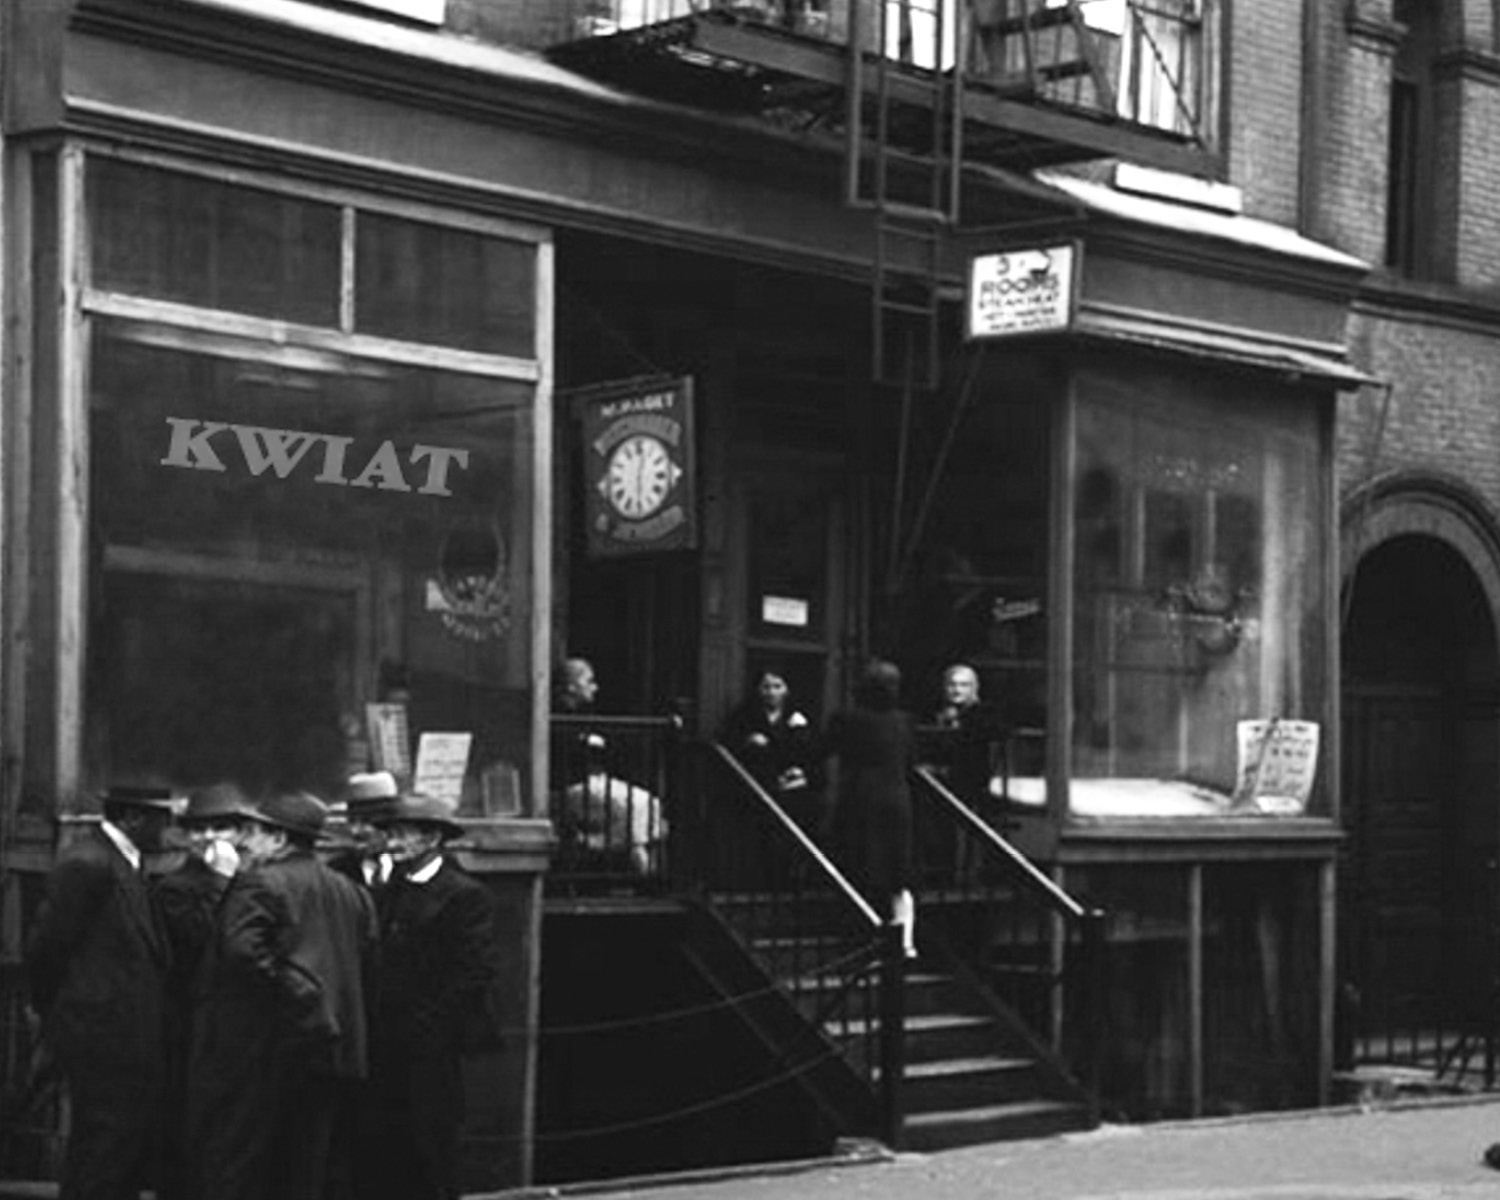 Kwiat NYC storefront in 1907